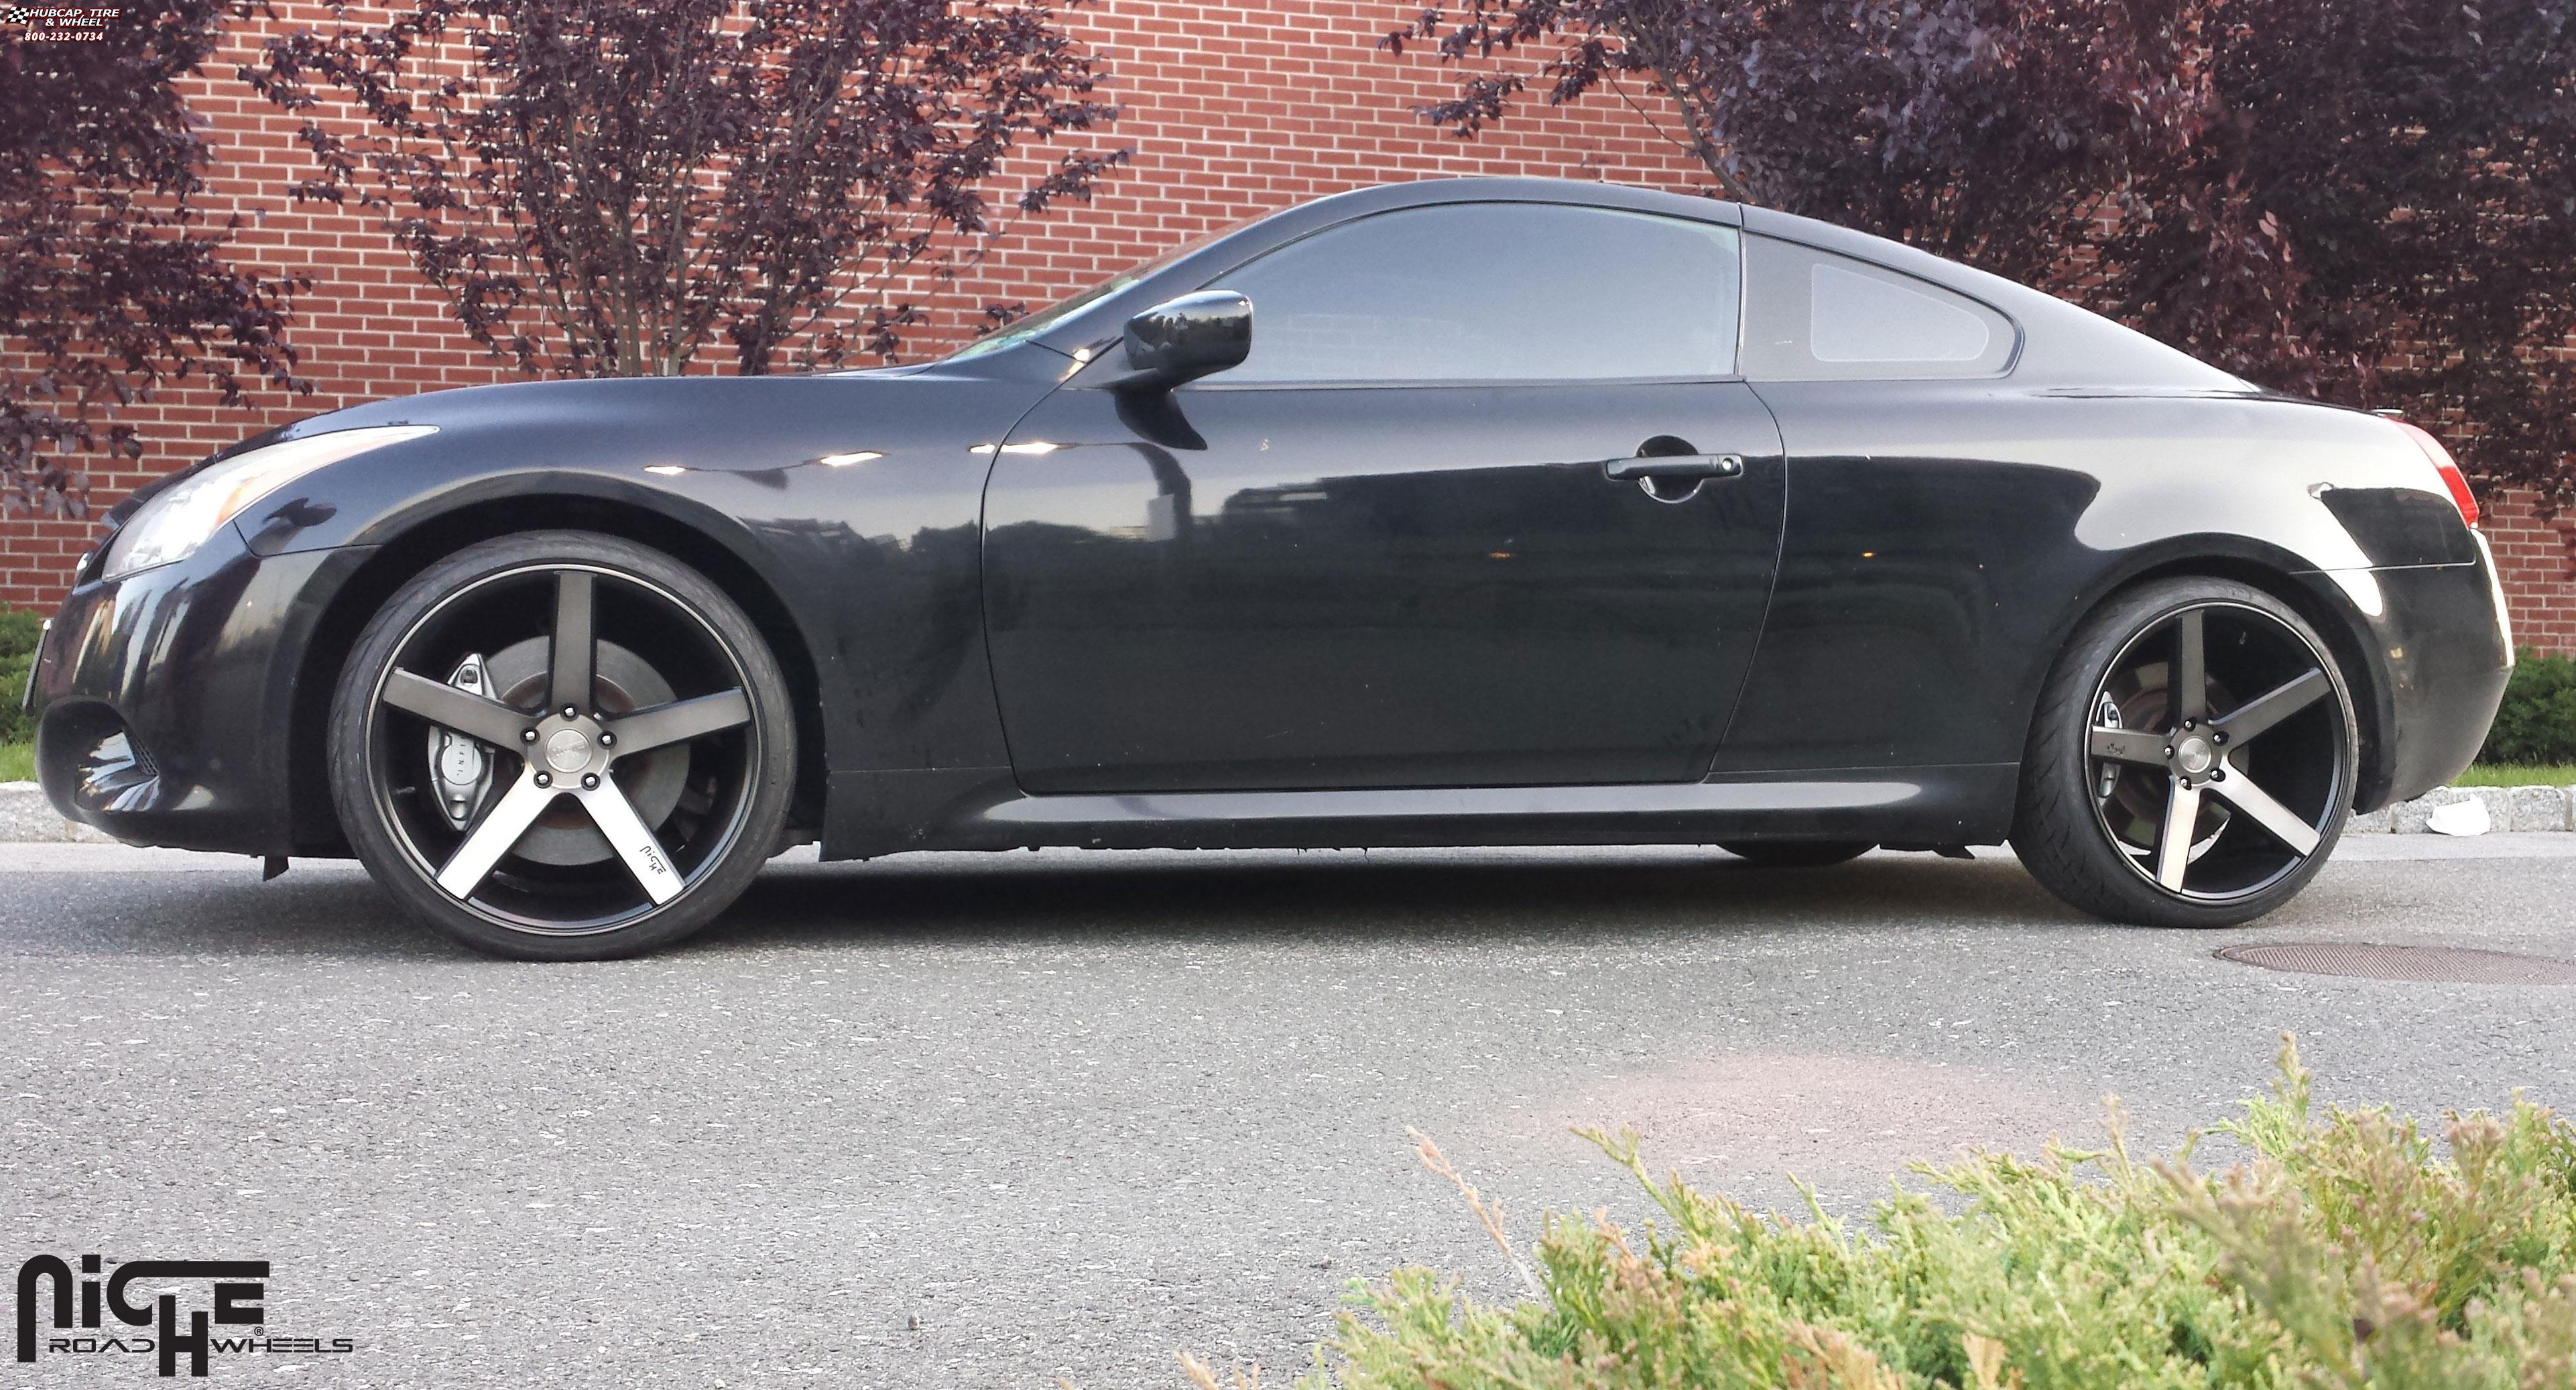 2014 Ford Fusion Tire Size >> Infiniti G37 Niche Milan - M134 Wheels Black & Machined ...